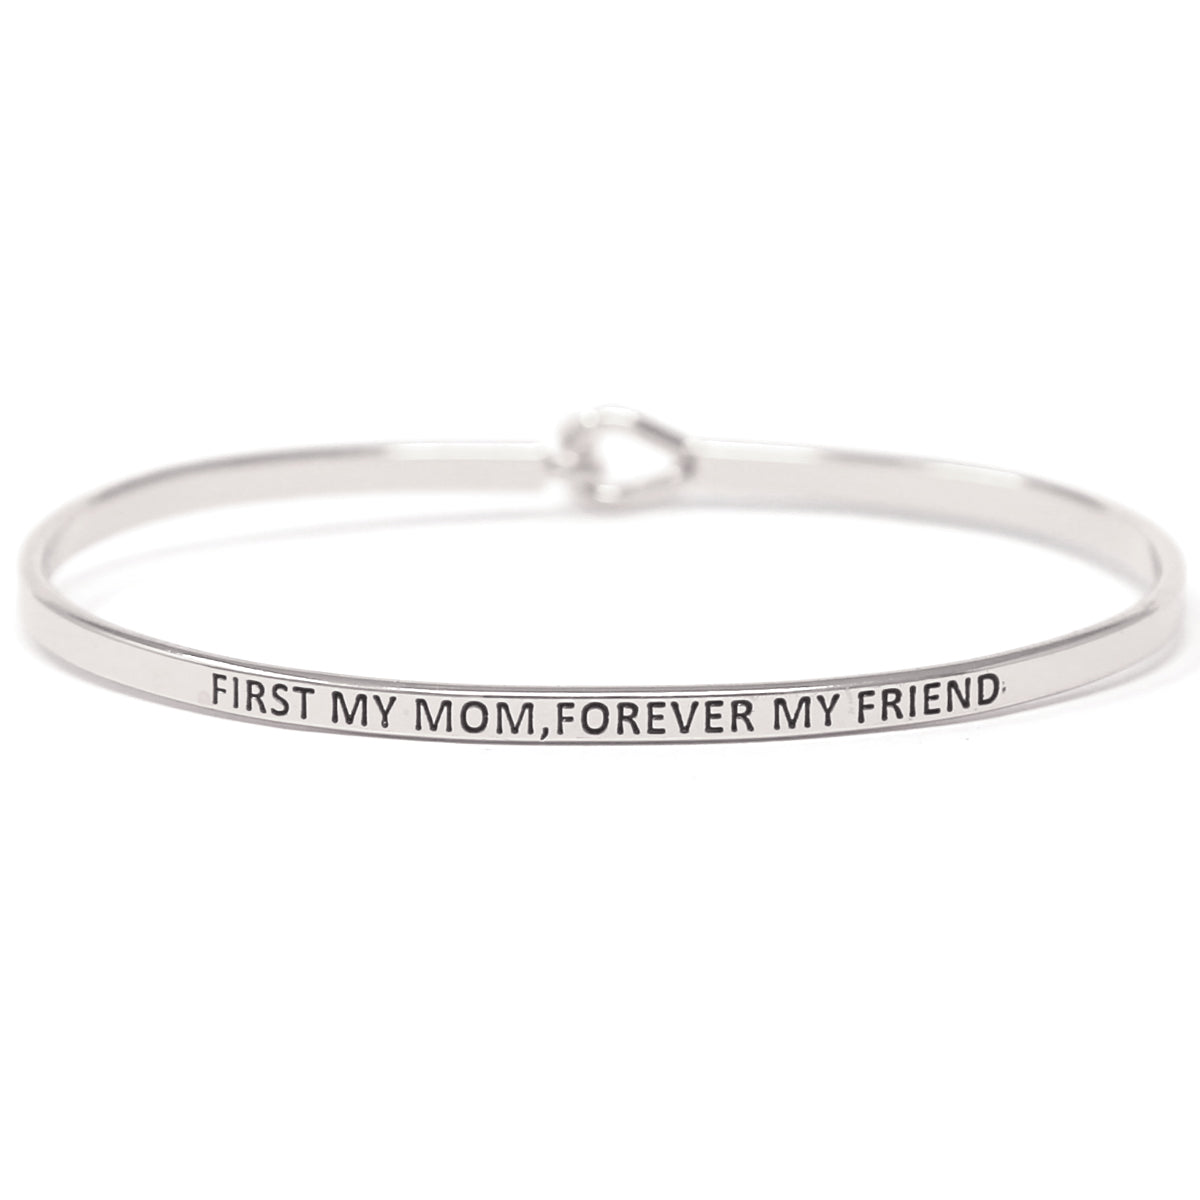 FIRST MY MOM, FOREVER MY FRIEND Inspirational Message Bracelet